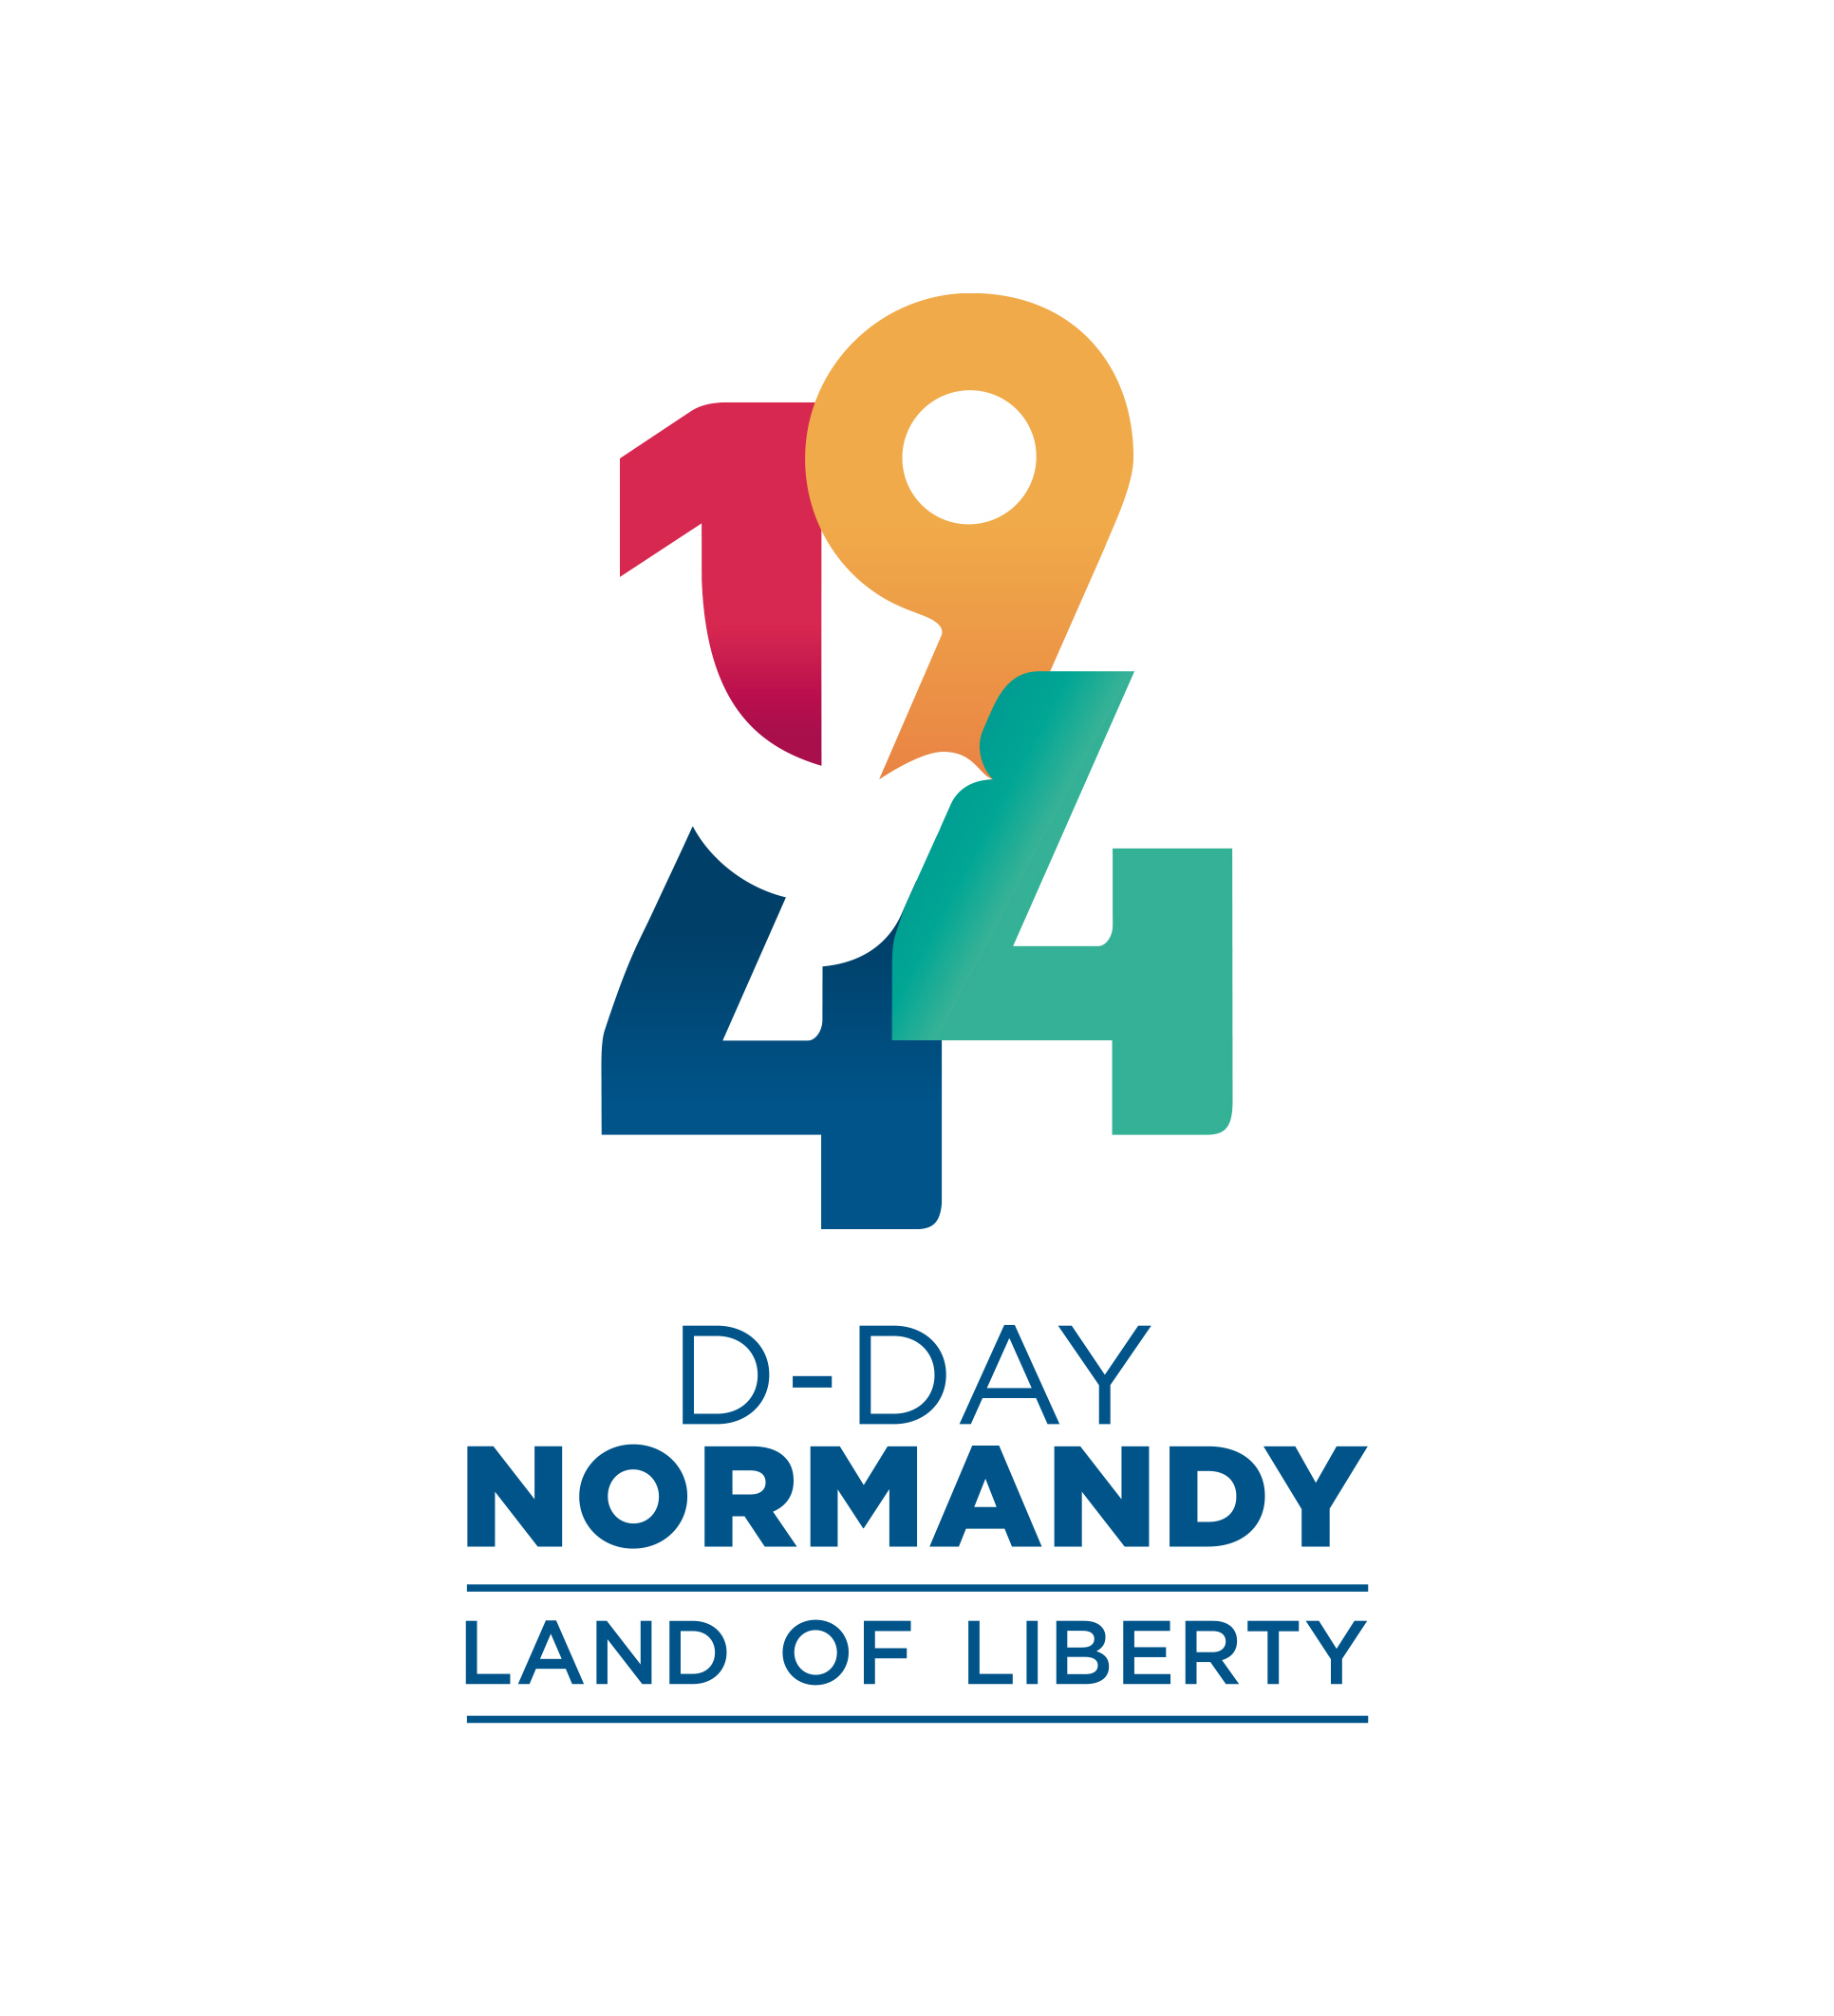 1944 D-day Normandy